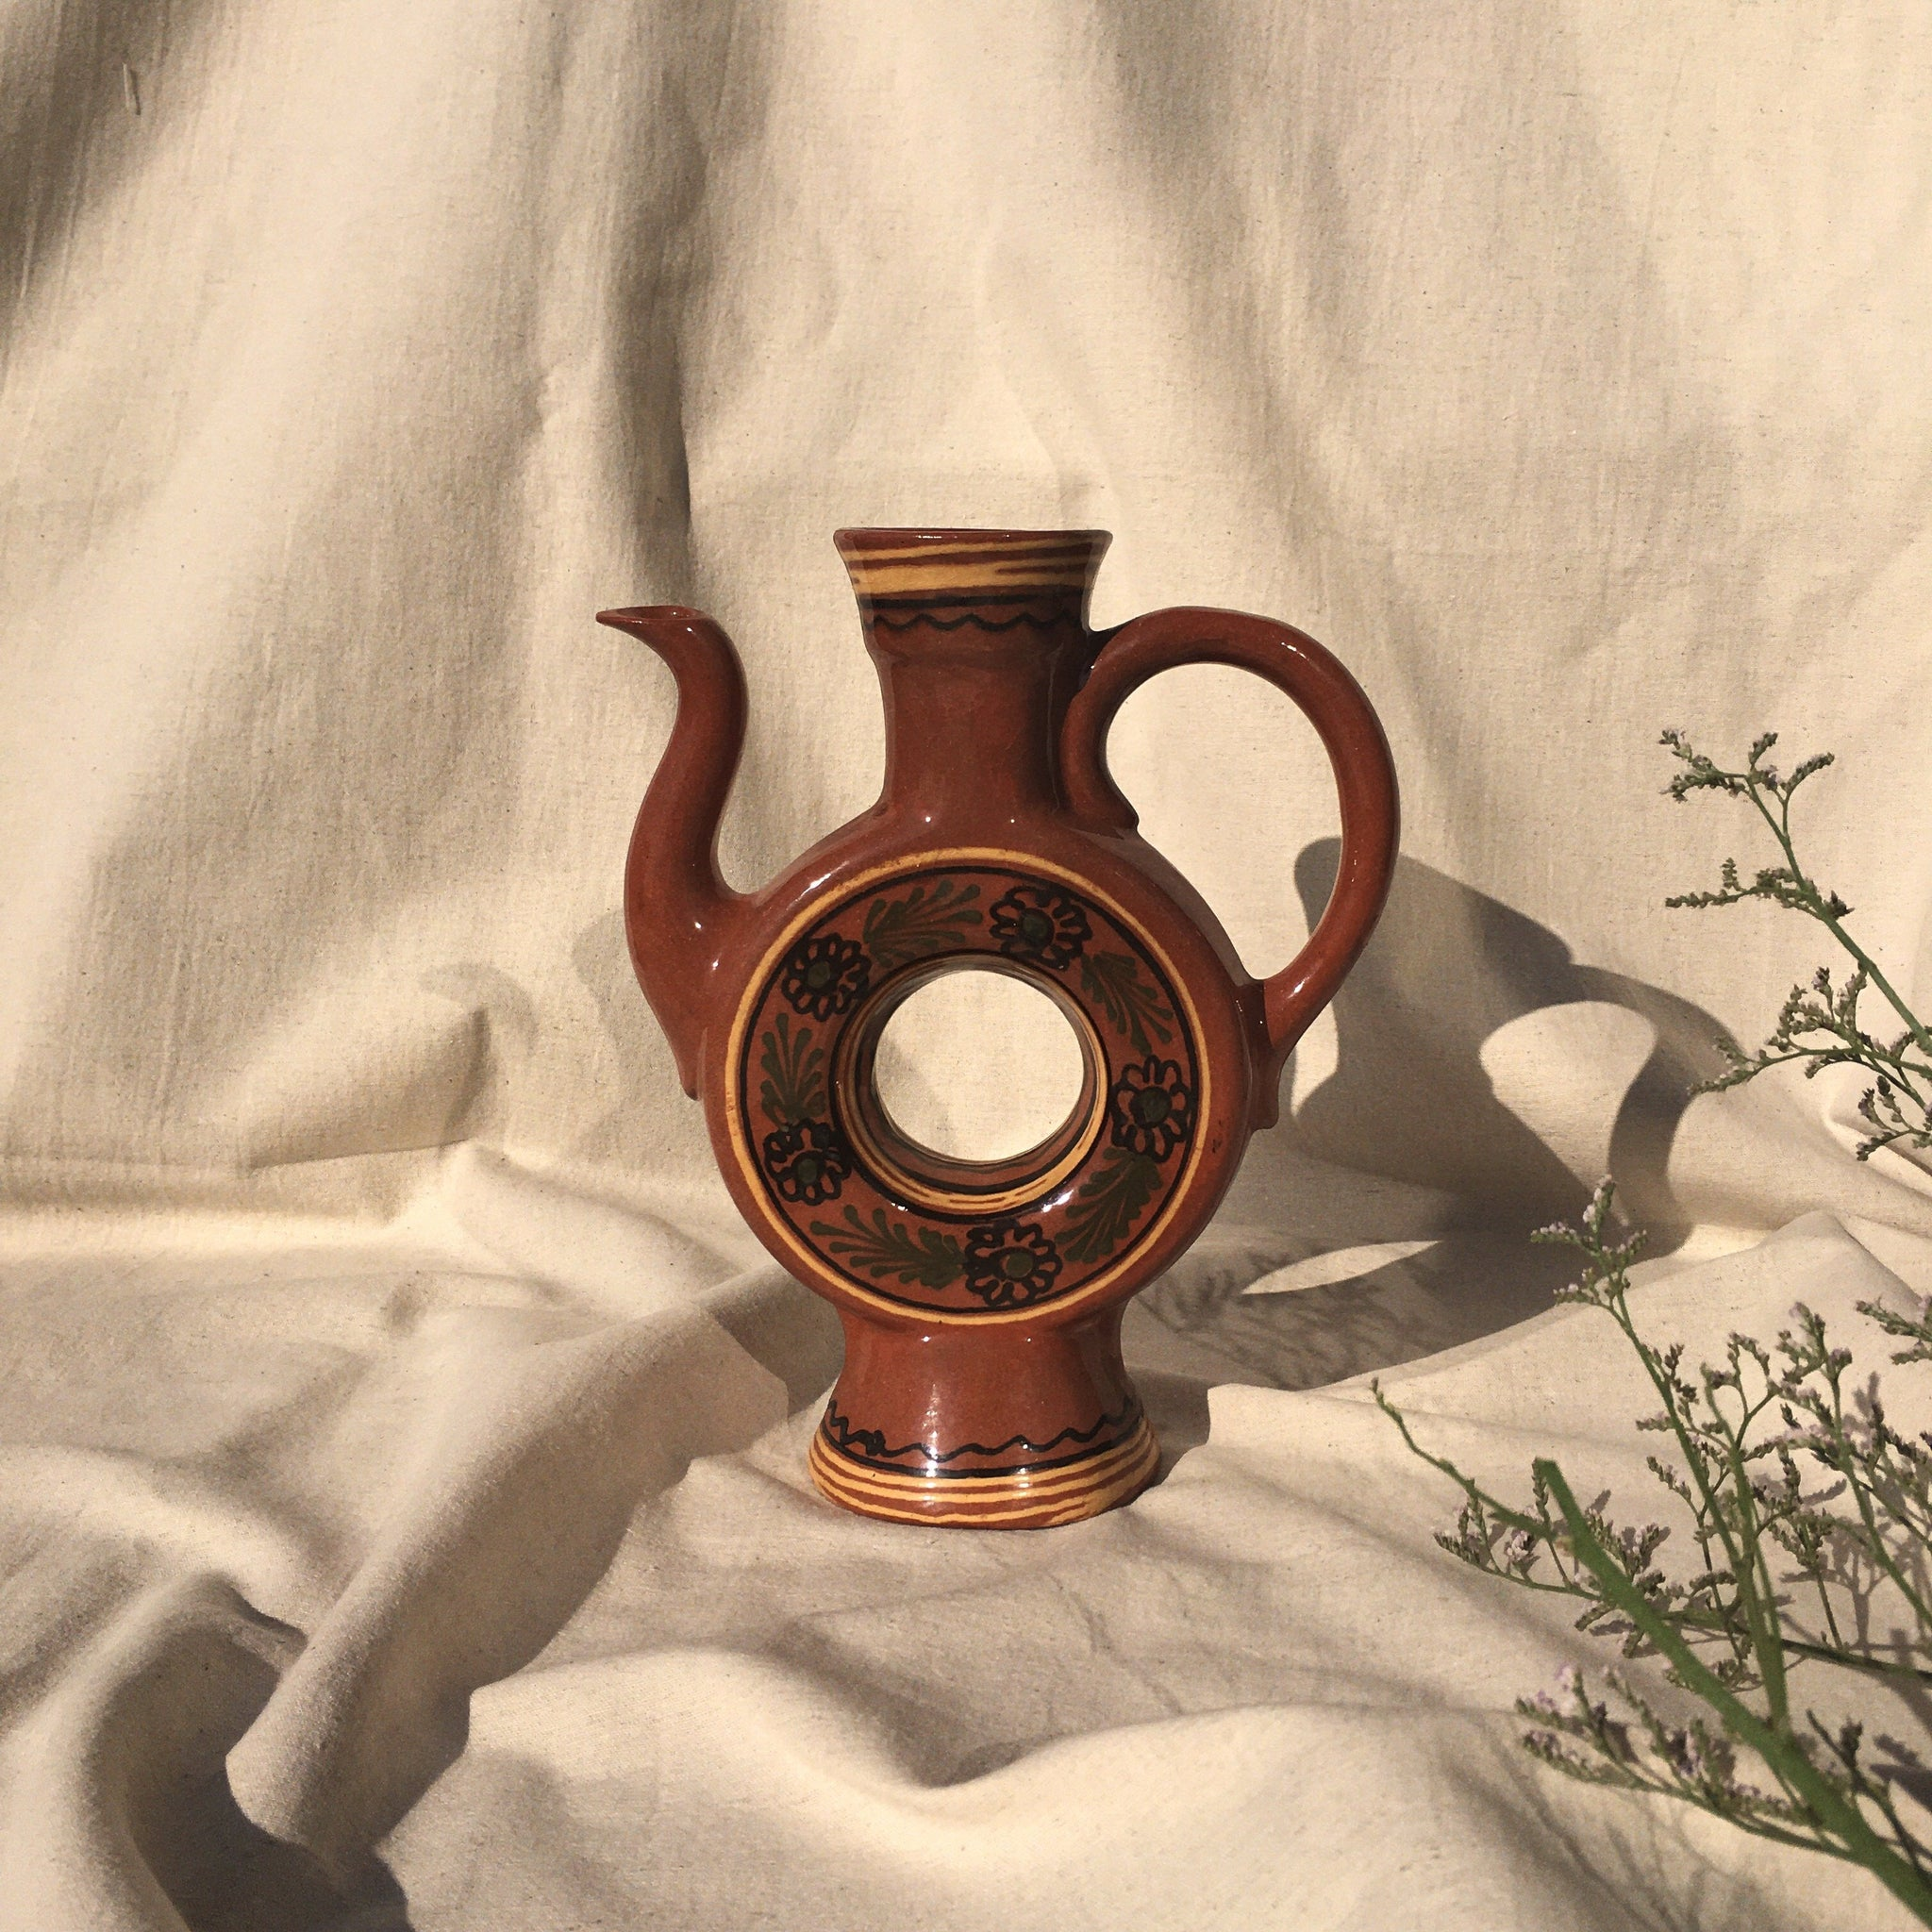 Figurative ceramic jug